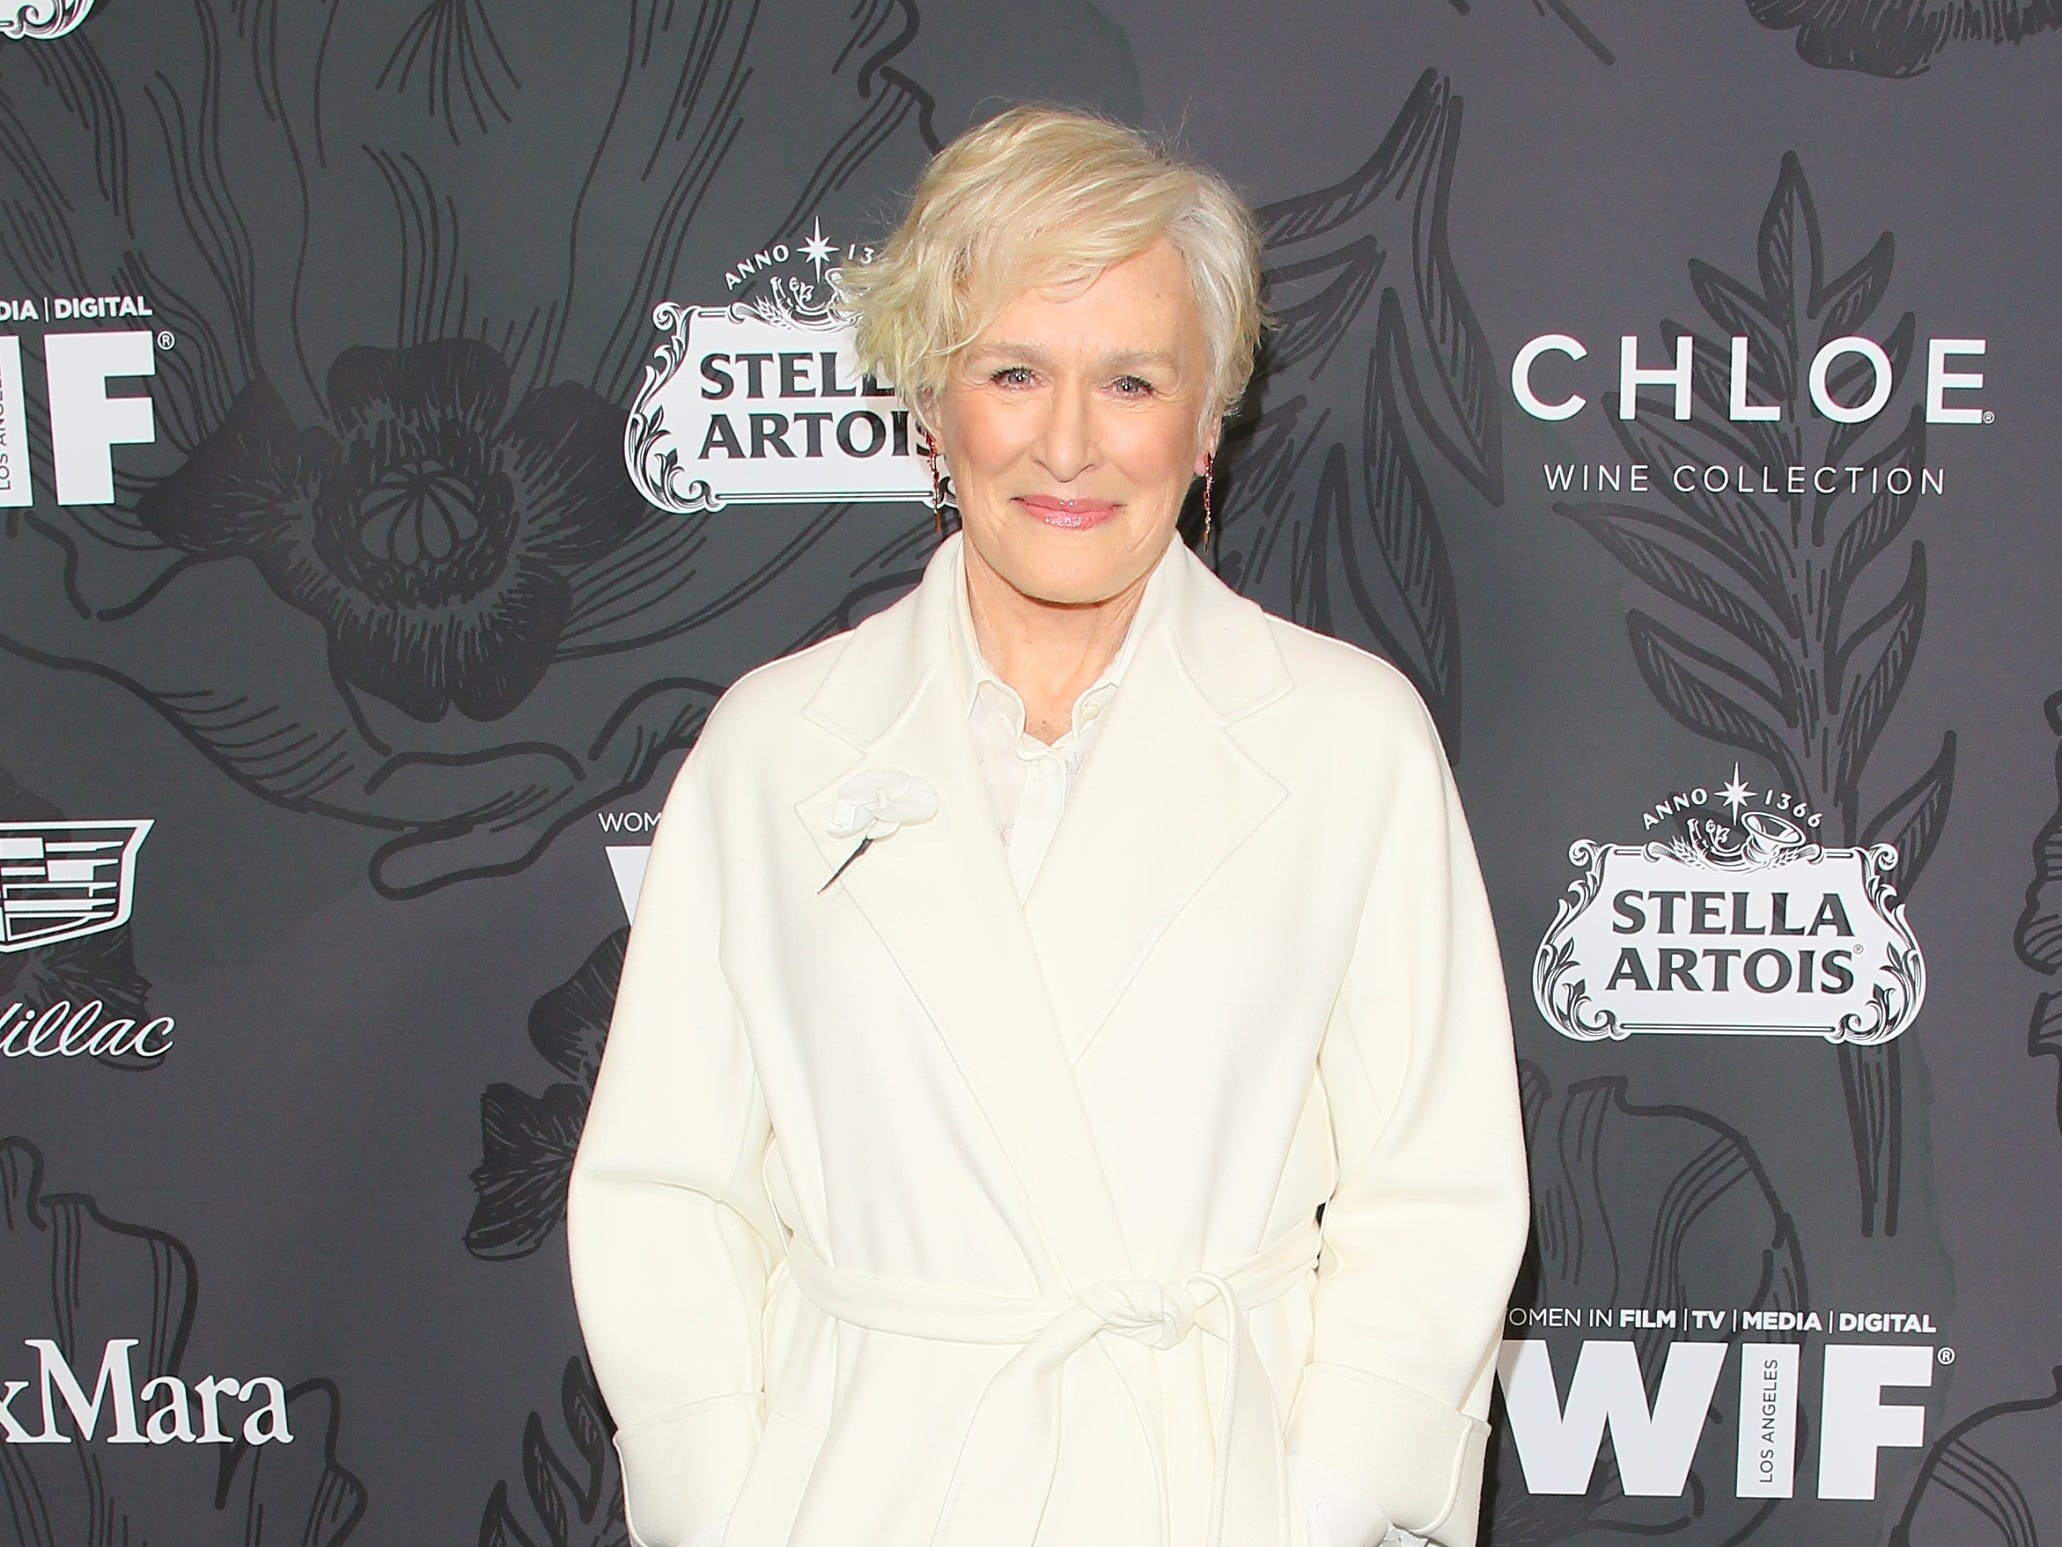 BEVERLY HILLS, CALIFORNIA - FEBRUARY 22: Glenn Close attends the 12th Annual Women In Film Oscar Party at Spring Place on February 22, 2019 in Beverly Hills, California. (Photo by JB Lacroix/WireImage) ORG XMIT: 775298179 ORIG FILE ID: 1126776063